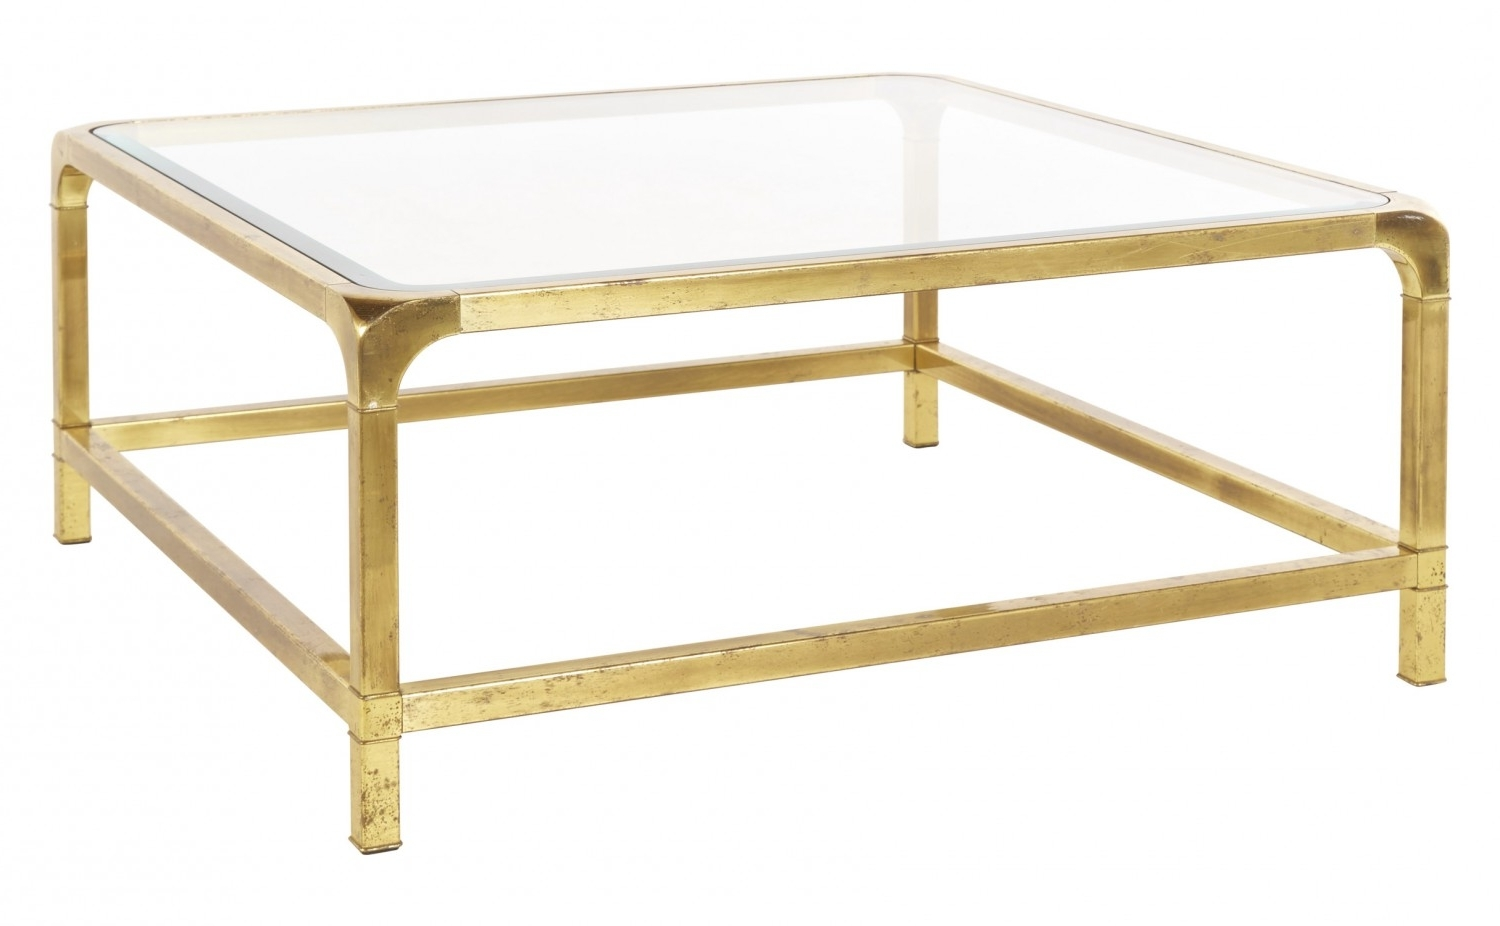 Jayson Home Intended For Most Recently Released Antique Brass Coffee Tables (Gallery 15 of 20)